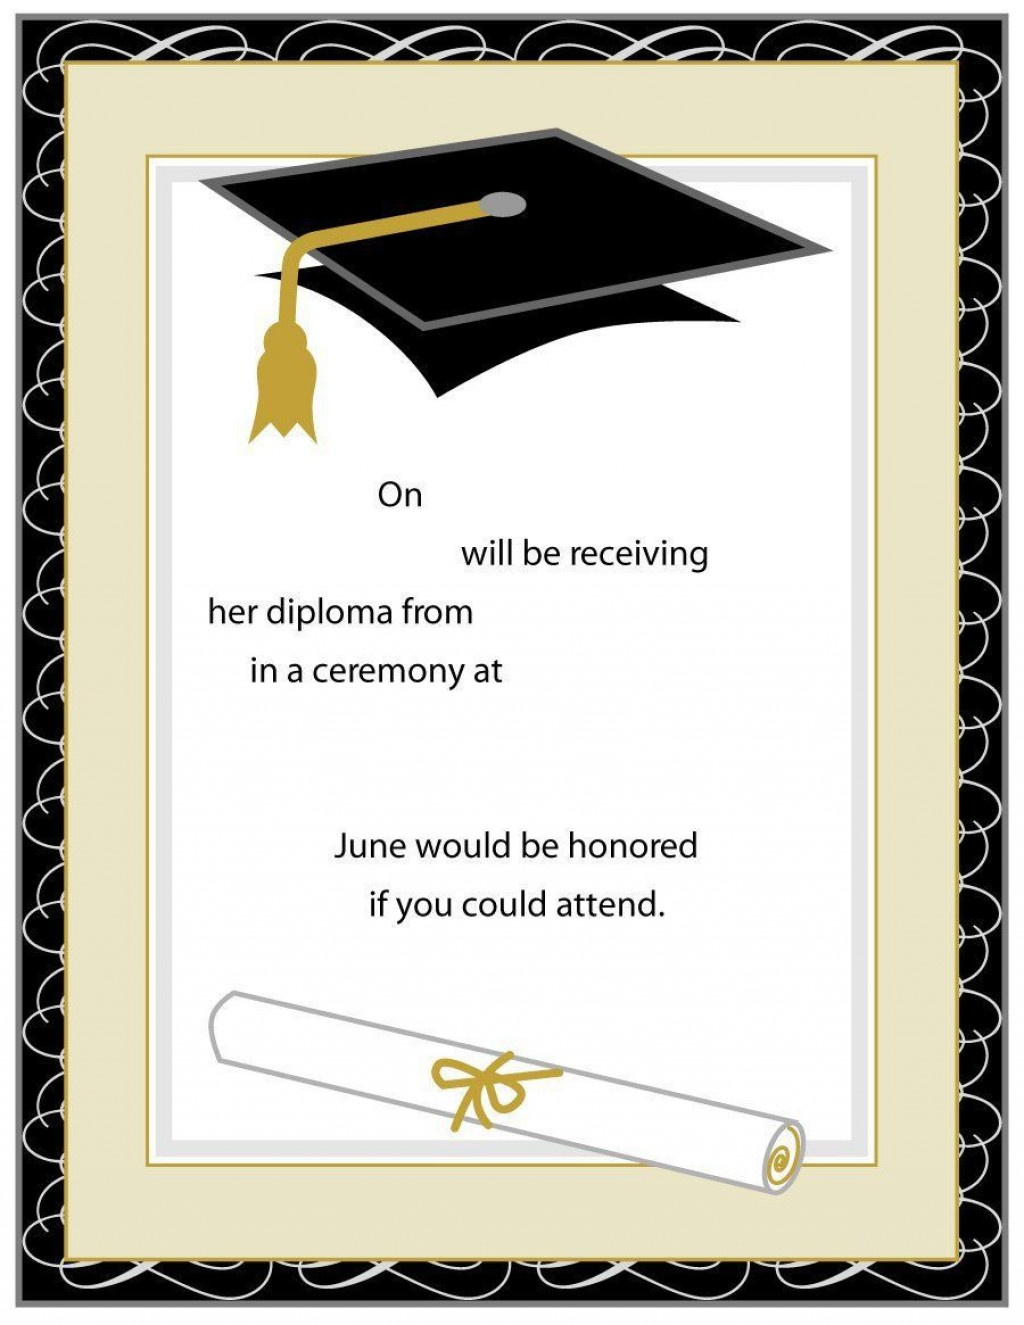 007 Archaicawful Free Graduation Announcement Template Example  Templates For Word MicrosoftLarge